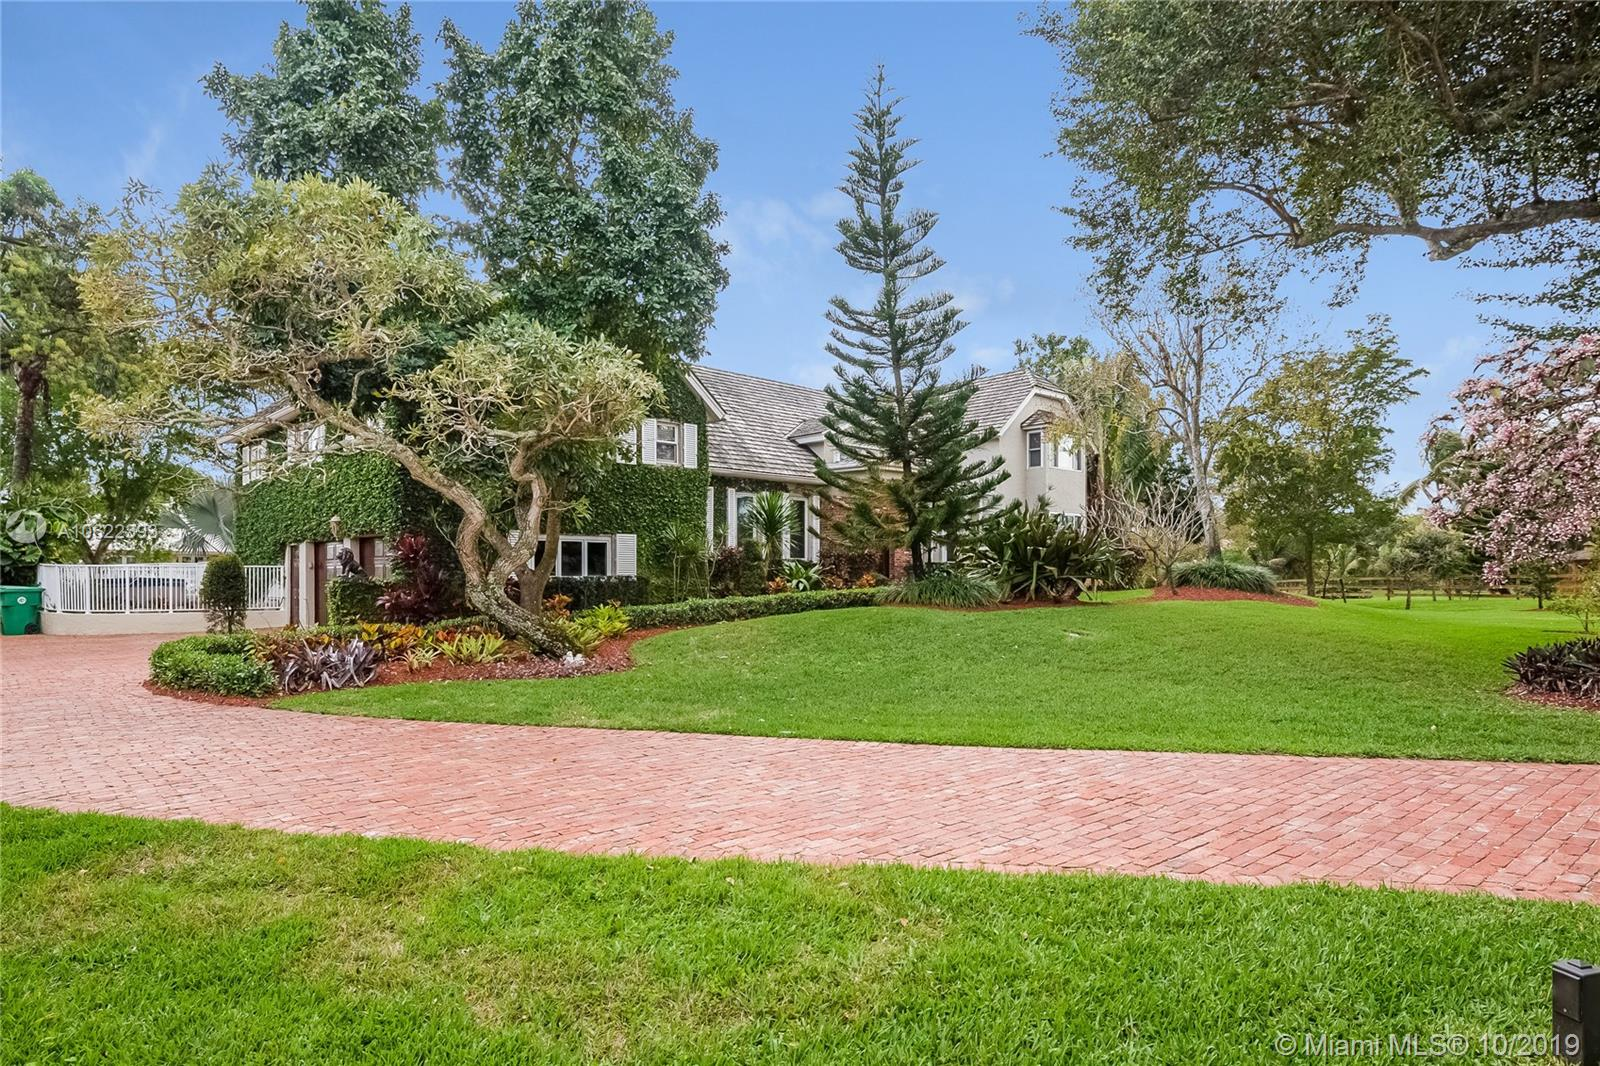 Magnificent, one-of-a-kind estate, northern charm and architecture in this remodeled, comfortable home on 2+ divisible acres, large bedrooms and beautiful office/den, 7,000+ sq ft. built. Impact windows and doors, abundant storage space. Enjoy reading in the gorgeous sun-room. Cook for 2 or 20, very well-appointed kitchen, built-in closets, all bathrooms updated, marble & natural stones. Large master suite with big terrace, 5-year-old-roof with warranty, lovely fully-fenced grounds with a 4 stall barn w/ tack room & fenced paddocks. Access the Davie Trail system for your horse rides. Great patio, large pool, private stocked pond, gazebo and canal. Large emergency gas power generator, storage tank, and a hot tub to relax after a hard day. Elegance, space and privacy, you can have it all!